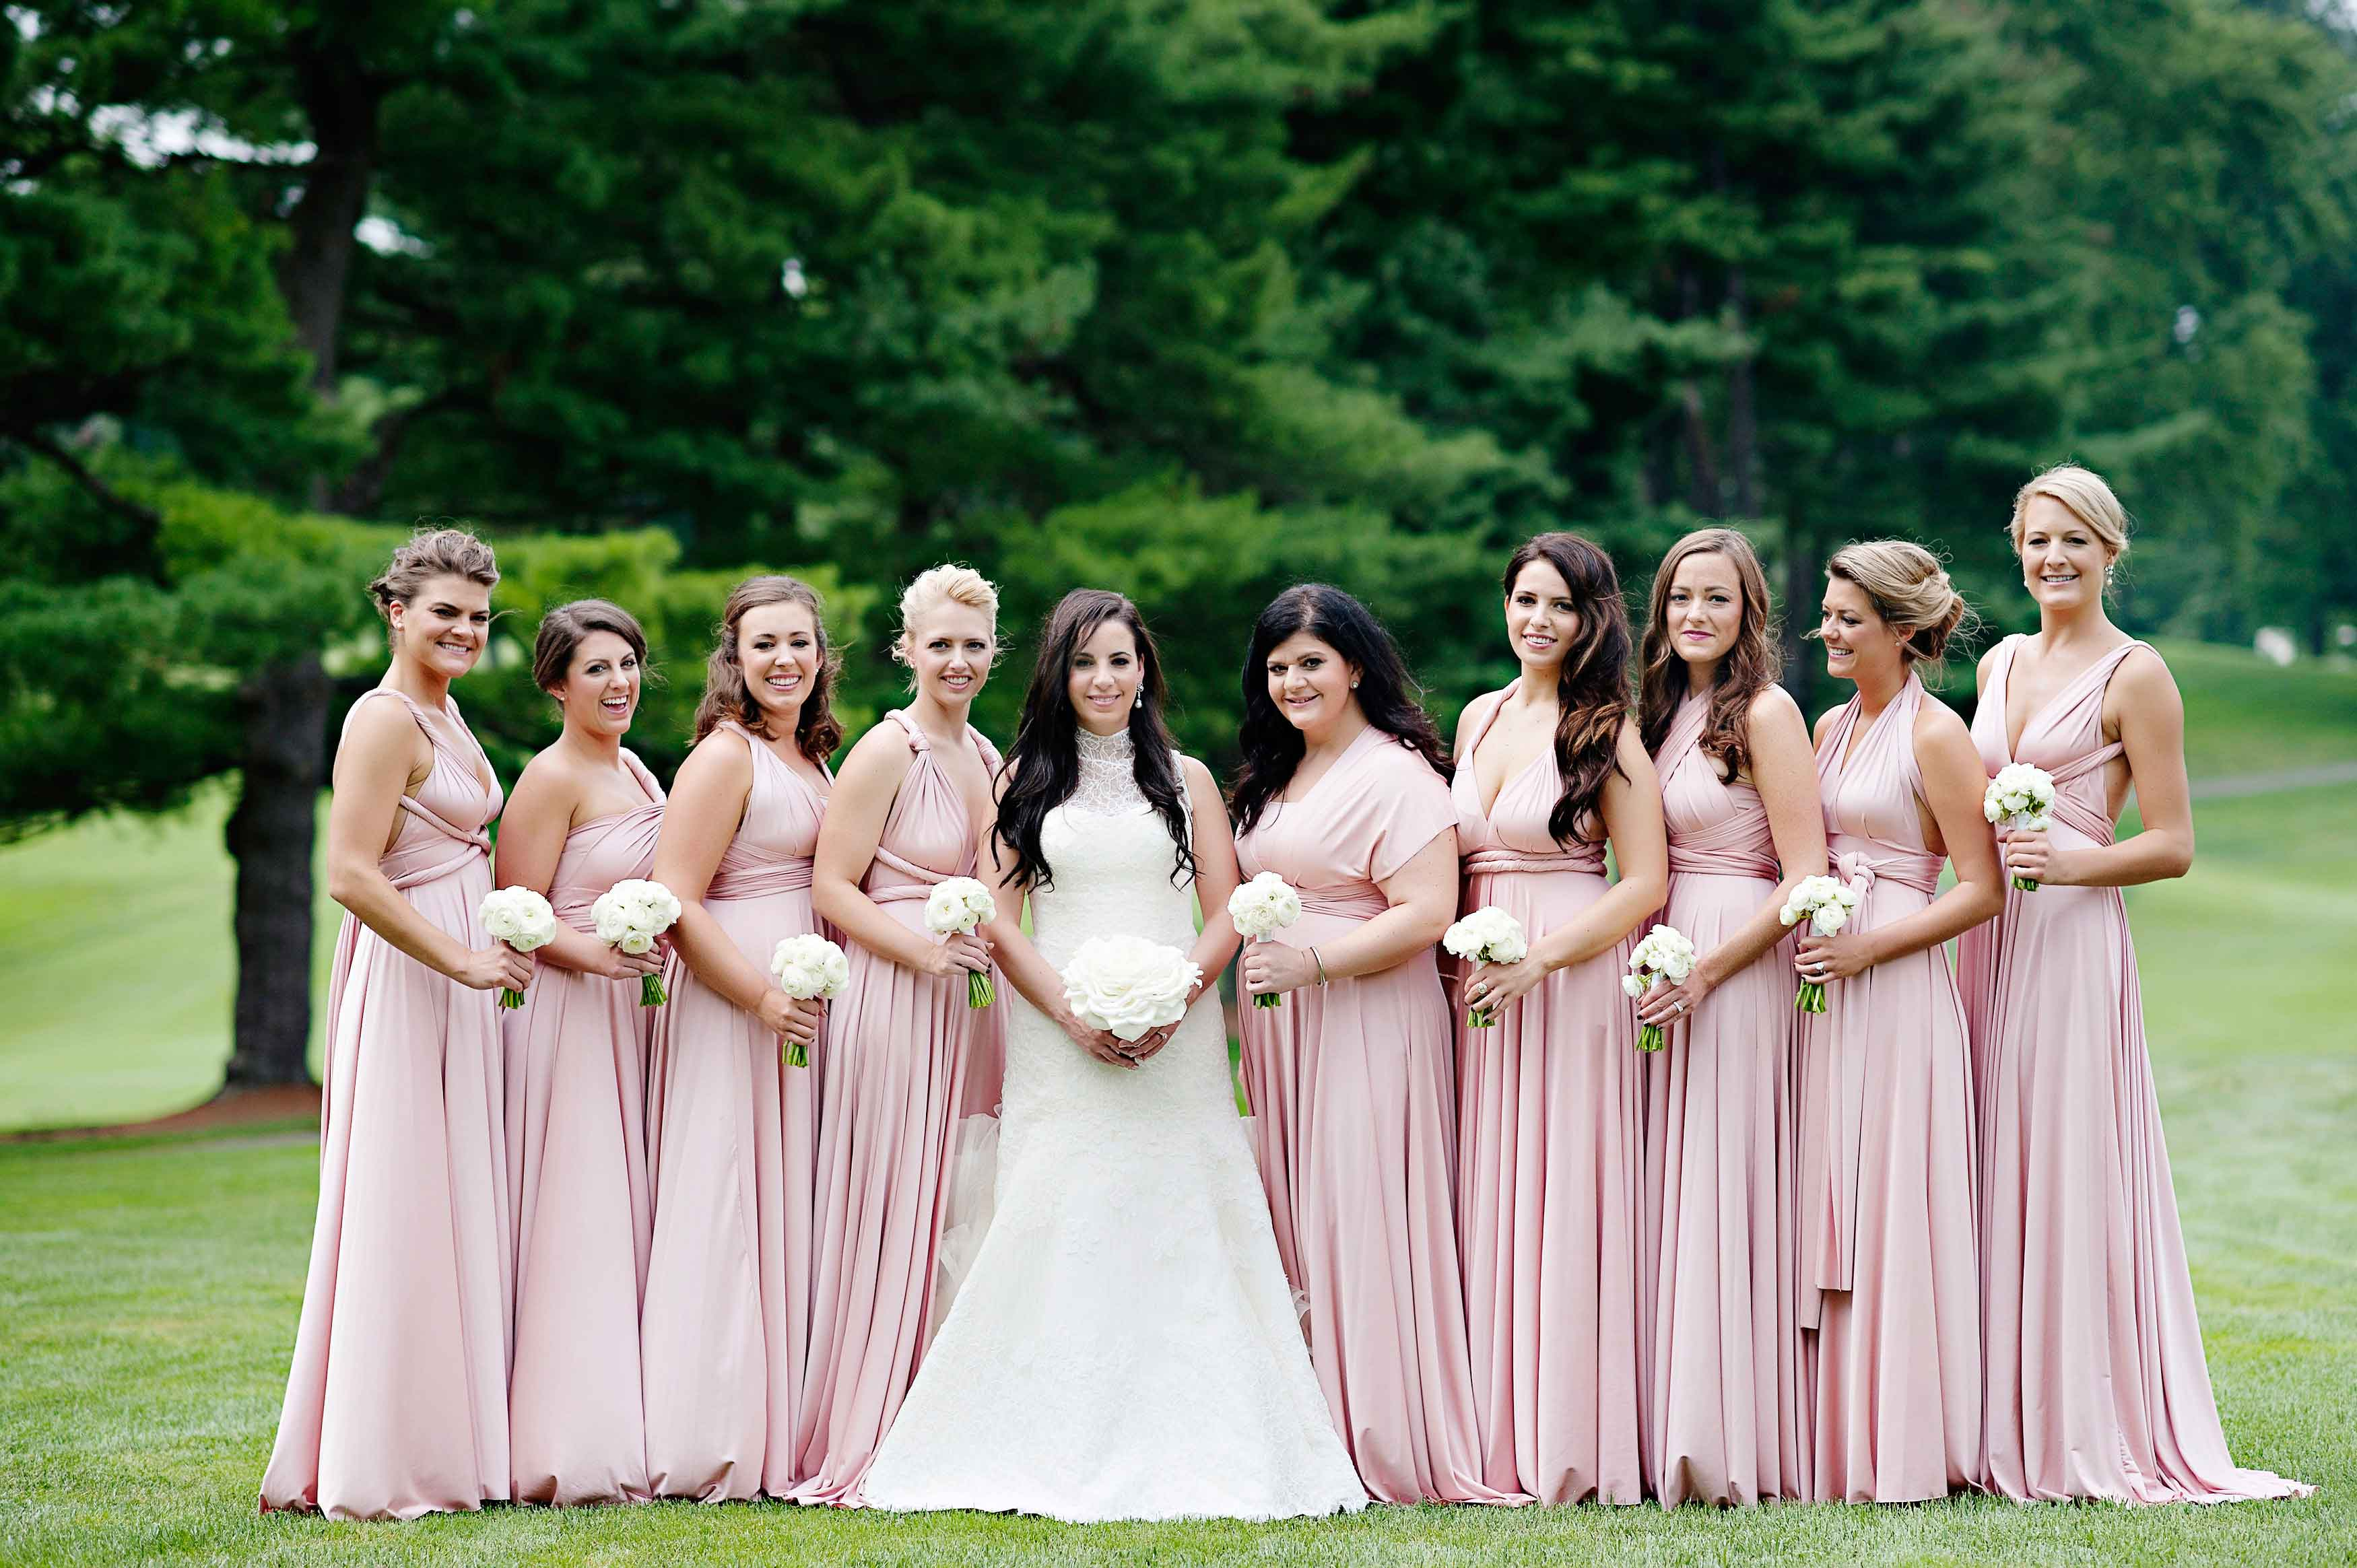 Bridesmaid dresses blush bridesmaid gowns from real weddings multi way blush bridesmaid dresses long ombrellifo Choice Image